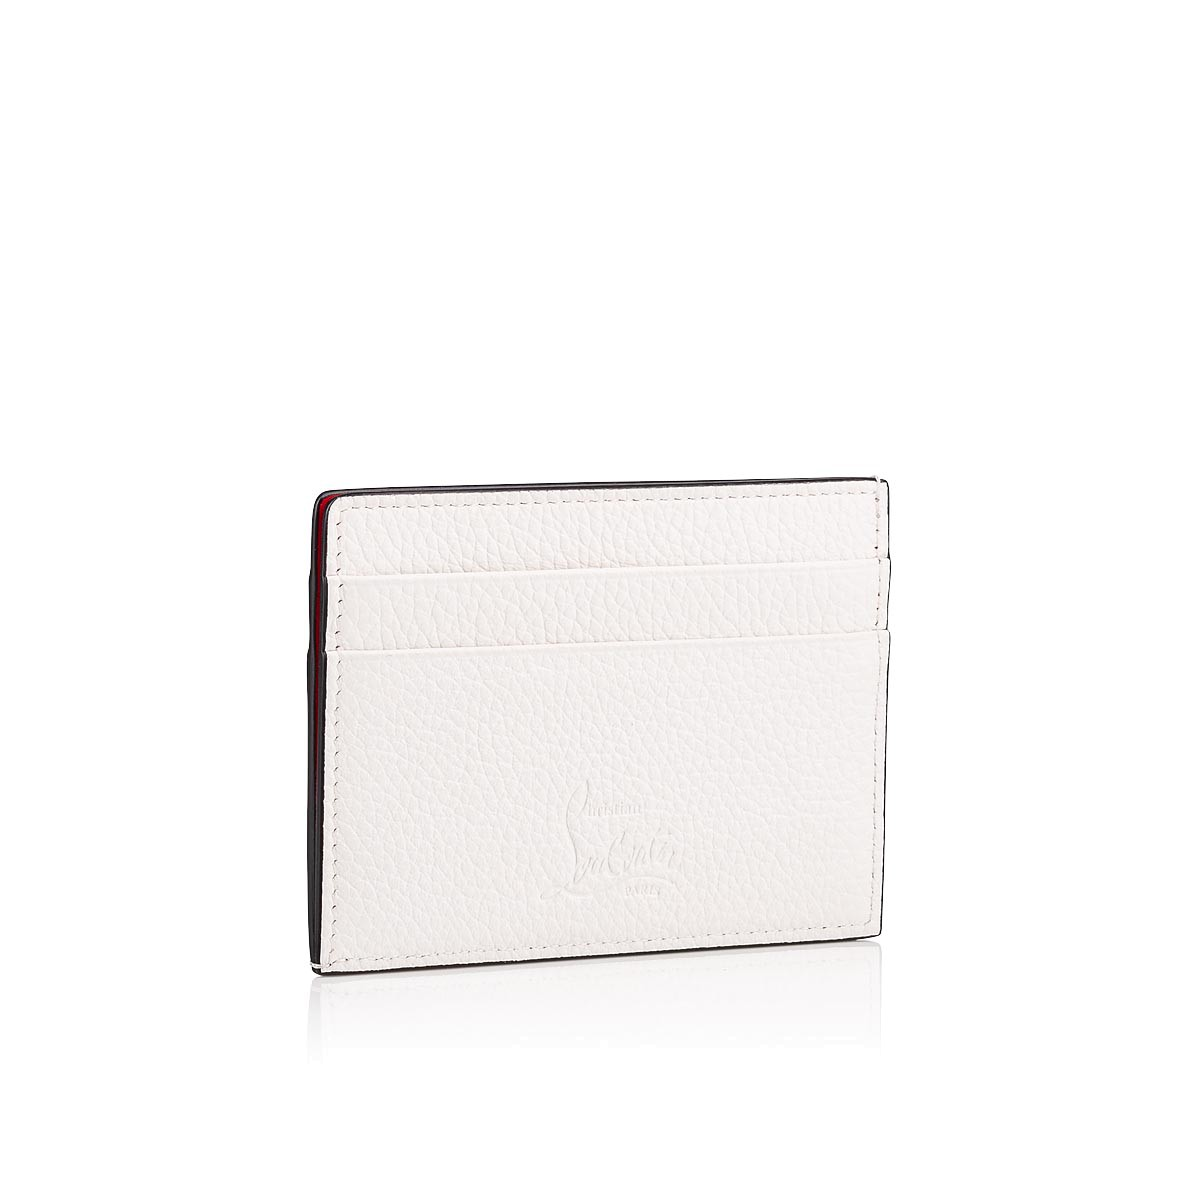 スモールレザーグッズ - Kios Card Holder - Christian Louboutin